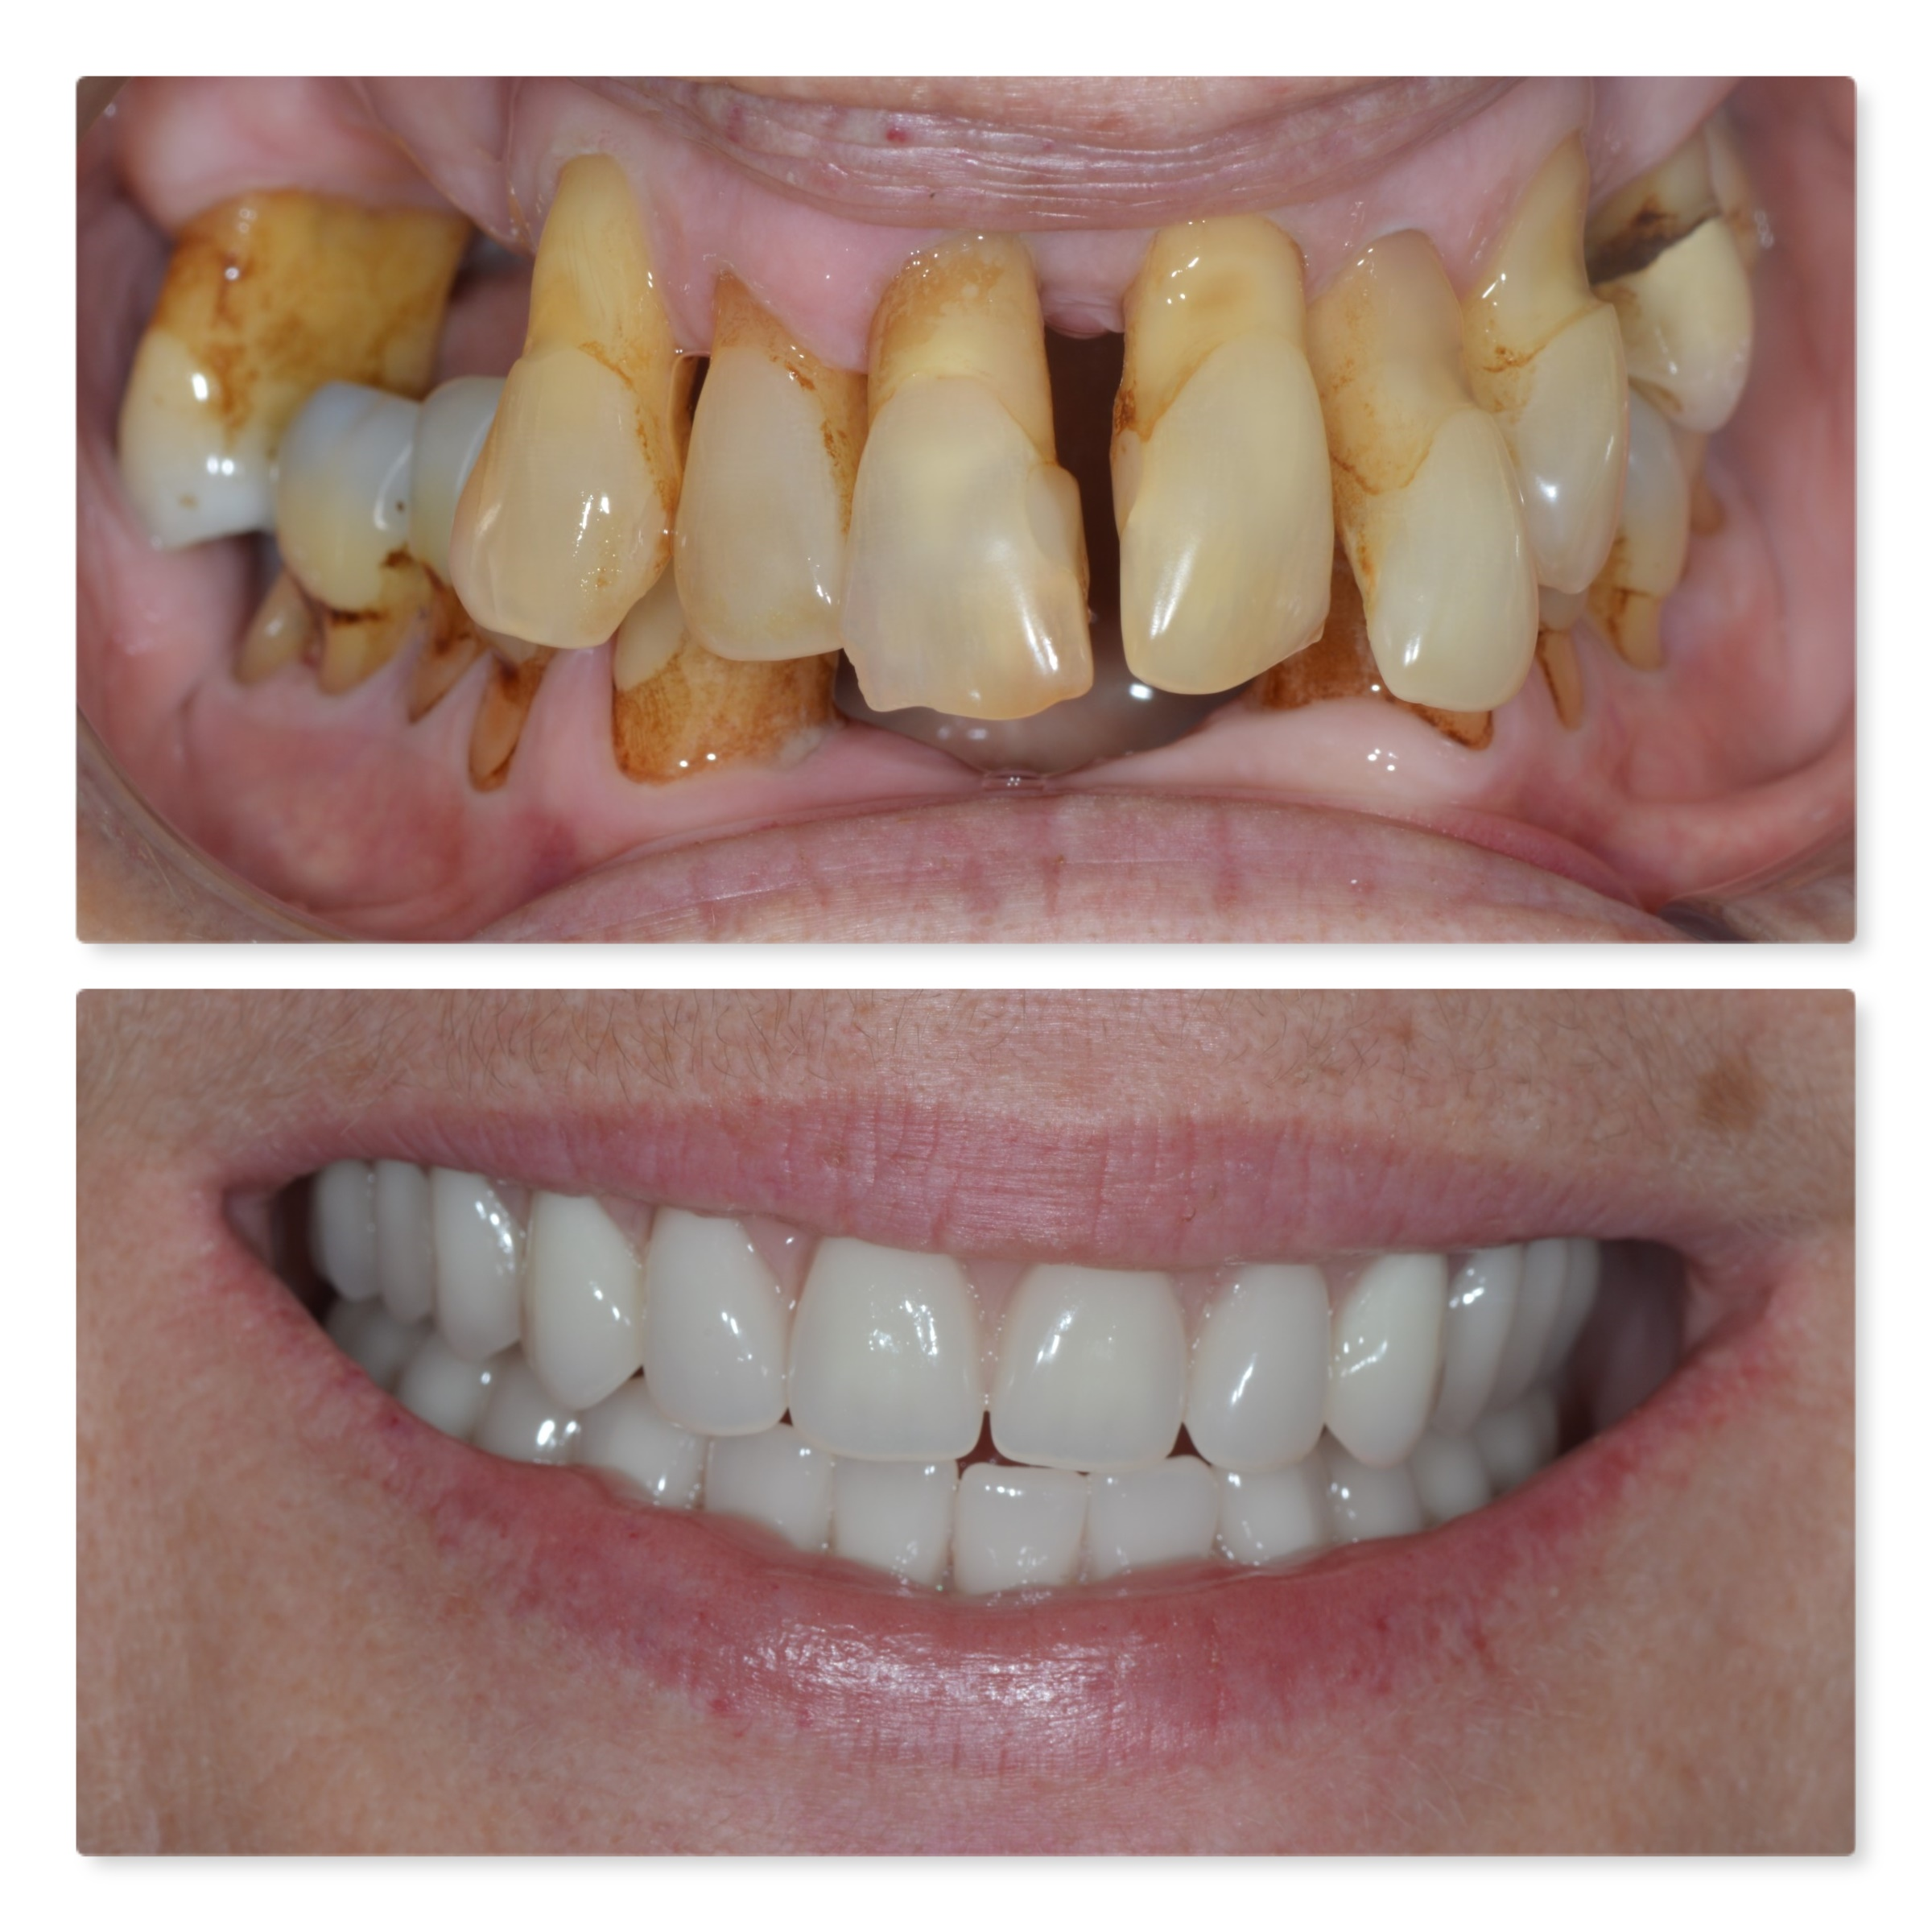 Full arch replacement of loose teeth using dental implants